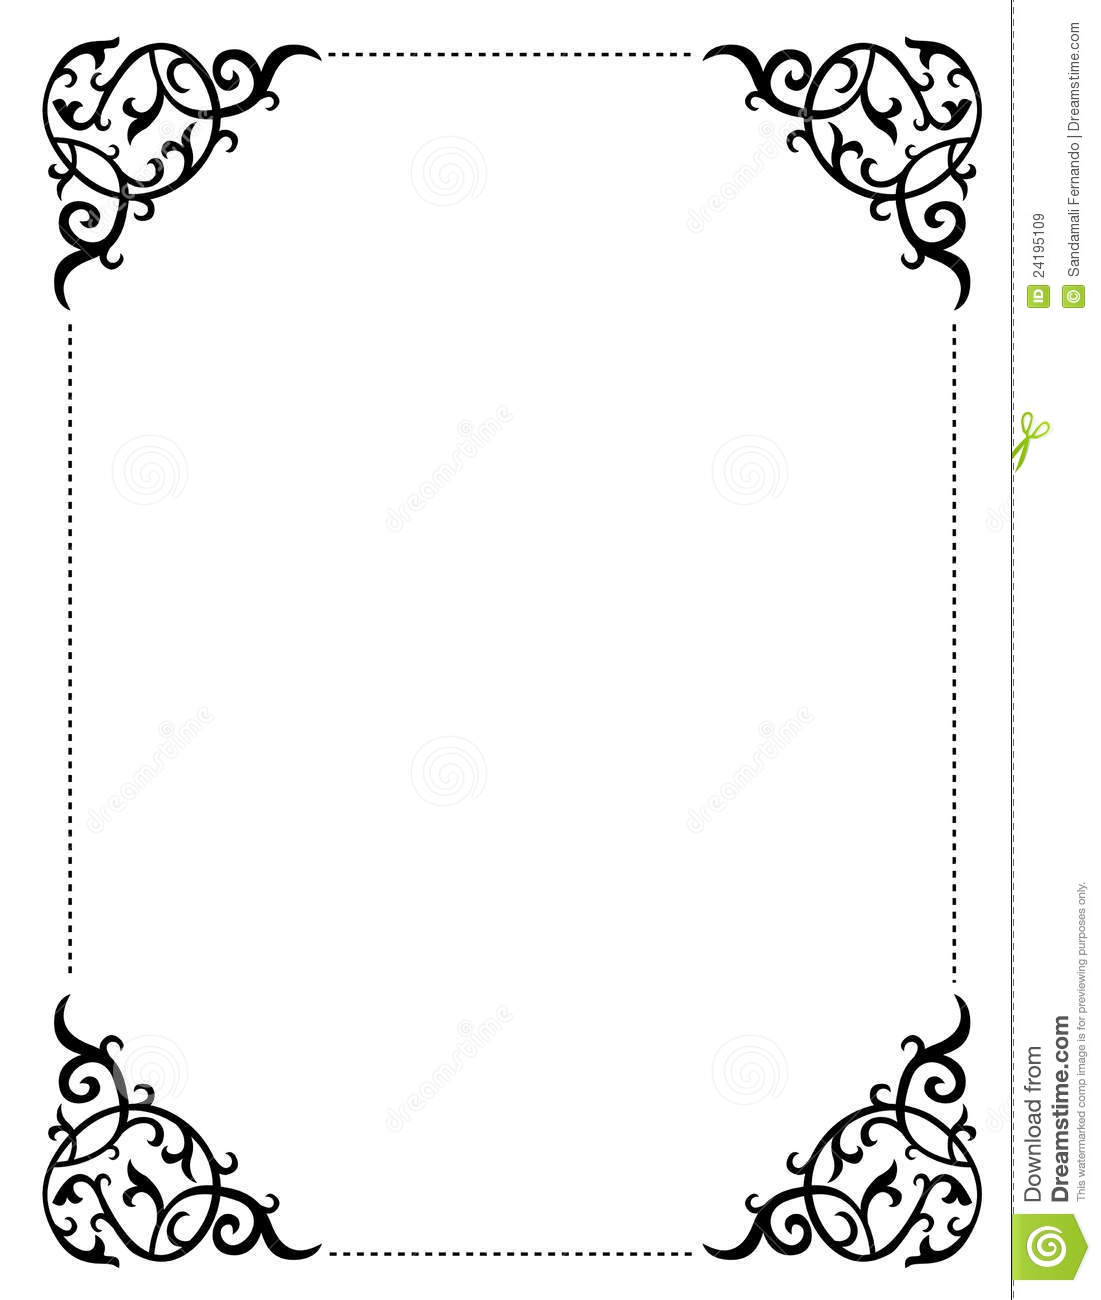 Invitation border frame stock vector Illustration of decorative